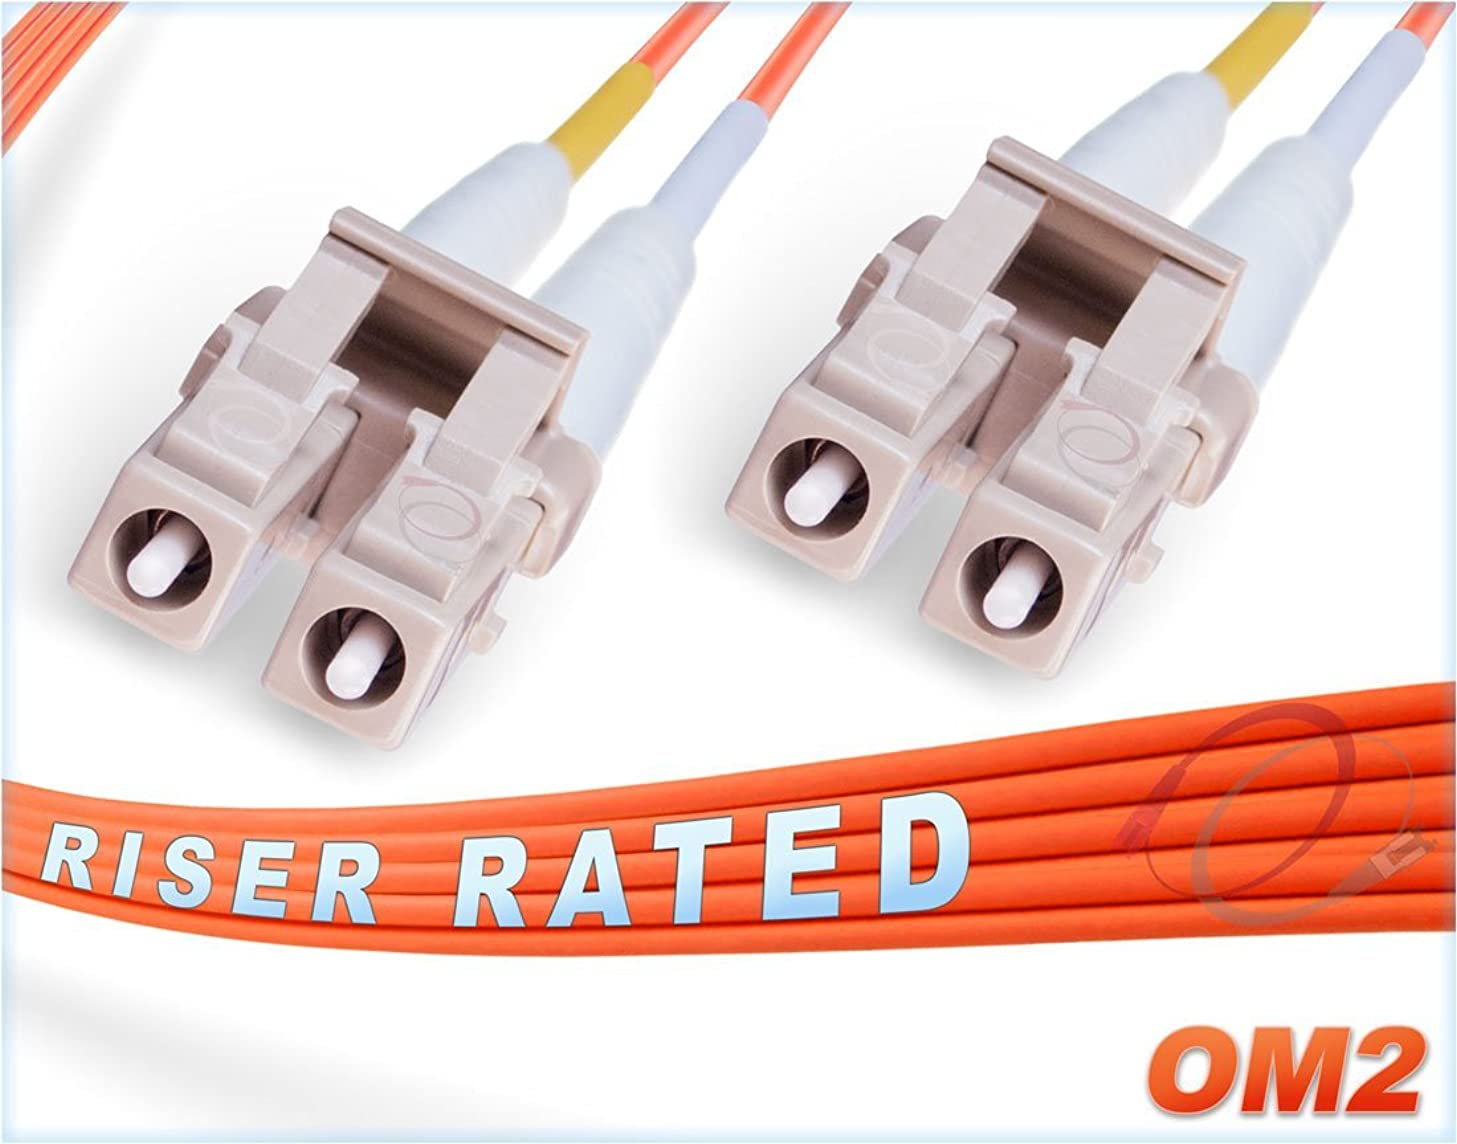 FiberCablesDirect - 10M OM2 LC LC Fiber Patch Cable | 1Gb Duplex 50/125 LC to LC Multimode Jumper 10 Meter (32.8ft) | Length Options: 0.5M - 300M | 1gb 10gb mmf lcupc sfp 1gbase mm dplx pvc ofnr lc-lc